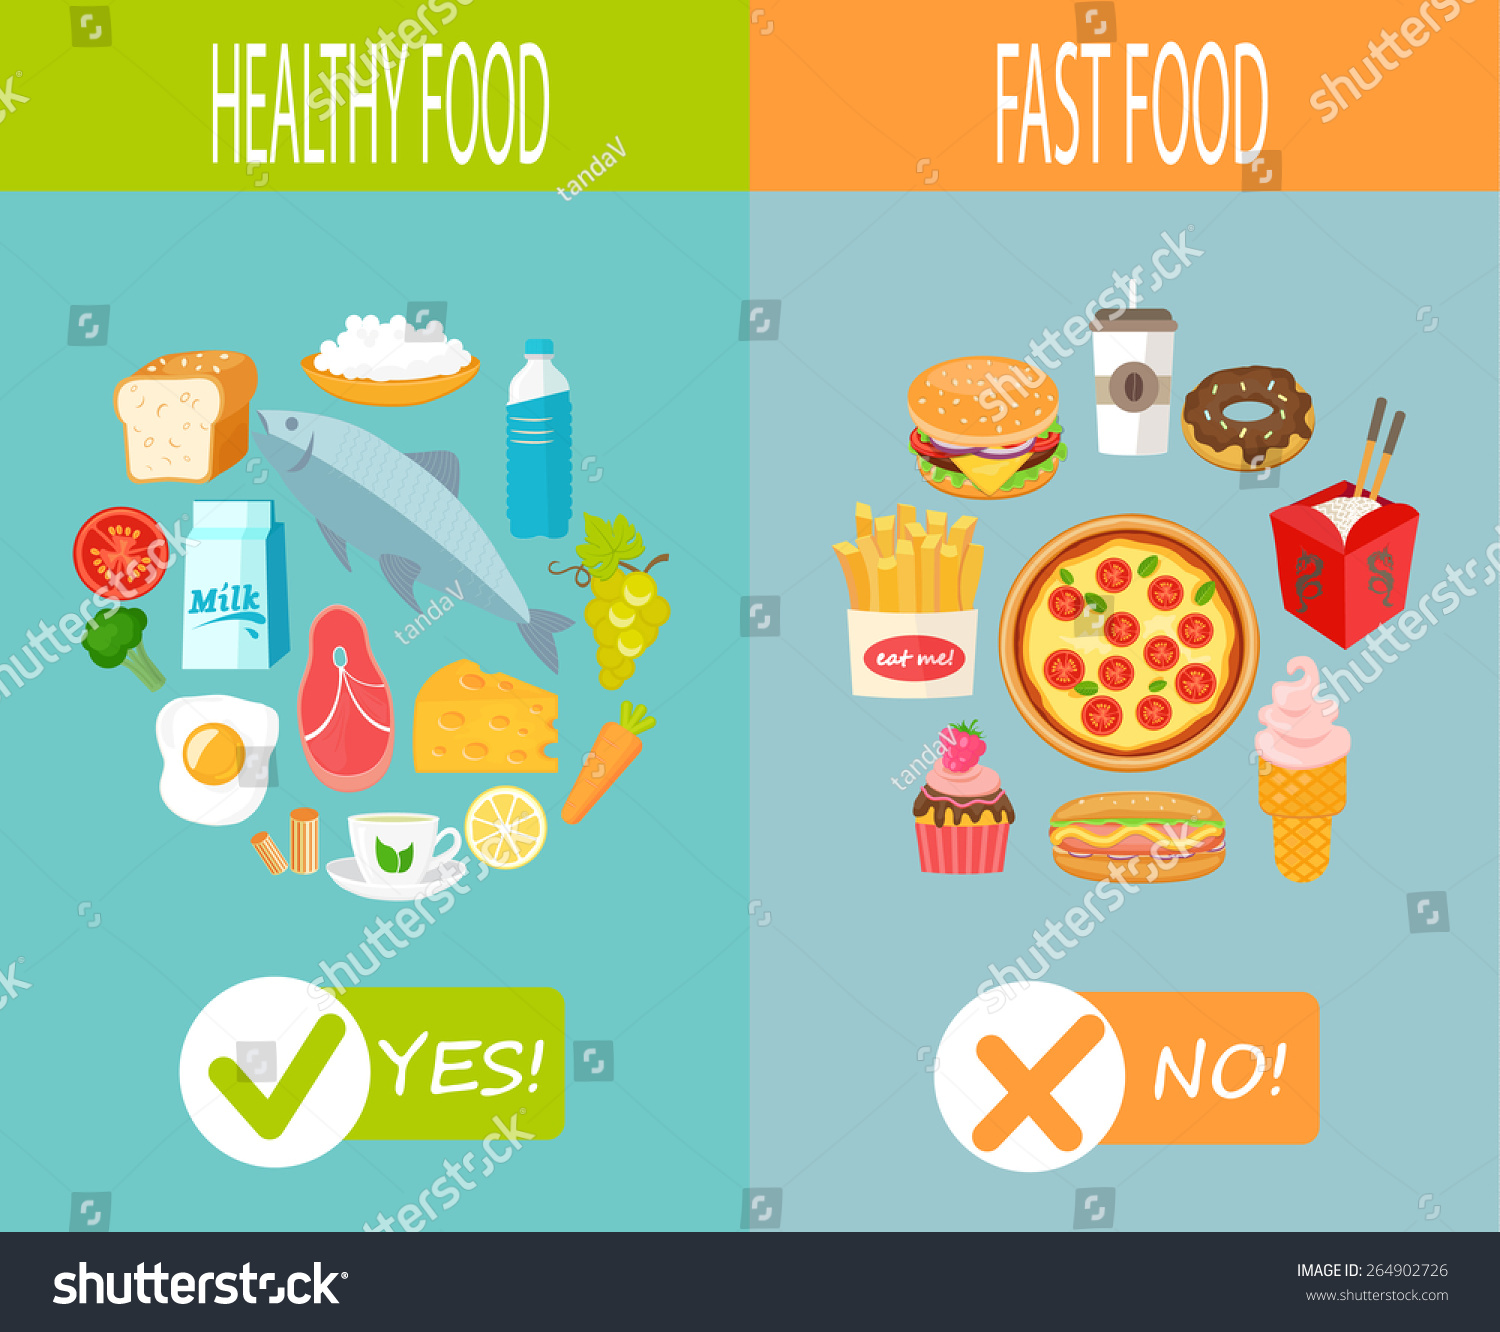 less fast food more healthy life Most fast foods are based on cheap, unhealthy ingredients however, many fast food places have now started offering healthy alternatives there are even some major chains that focus exclusively on providing healthy fast food these can be life-savers when you don't have the time or energy to cook a healthy meal.